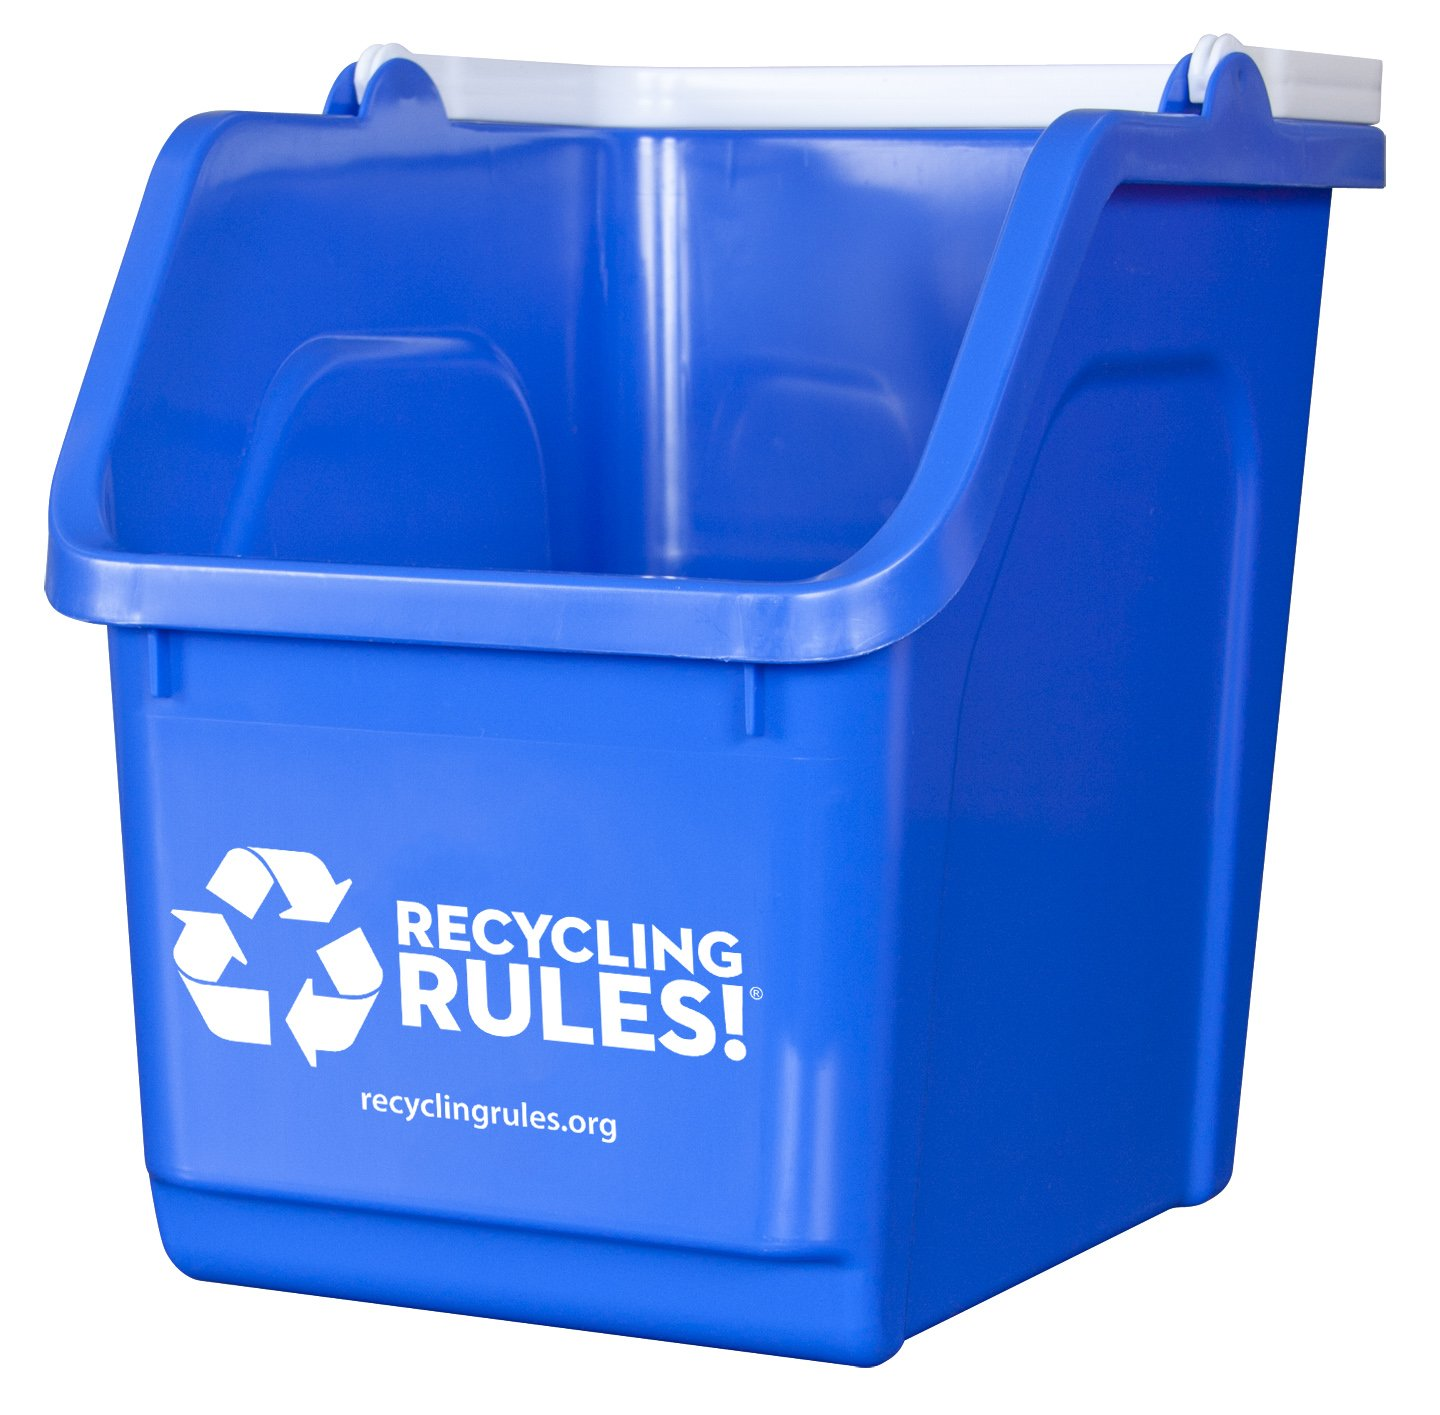 4 Pack Of Bins Blue Stackable Recycling Bin Container